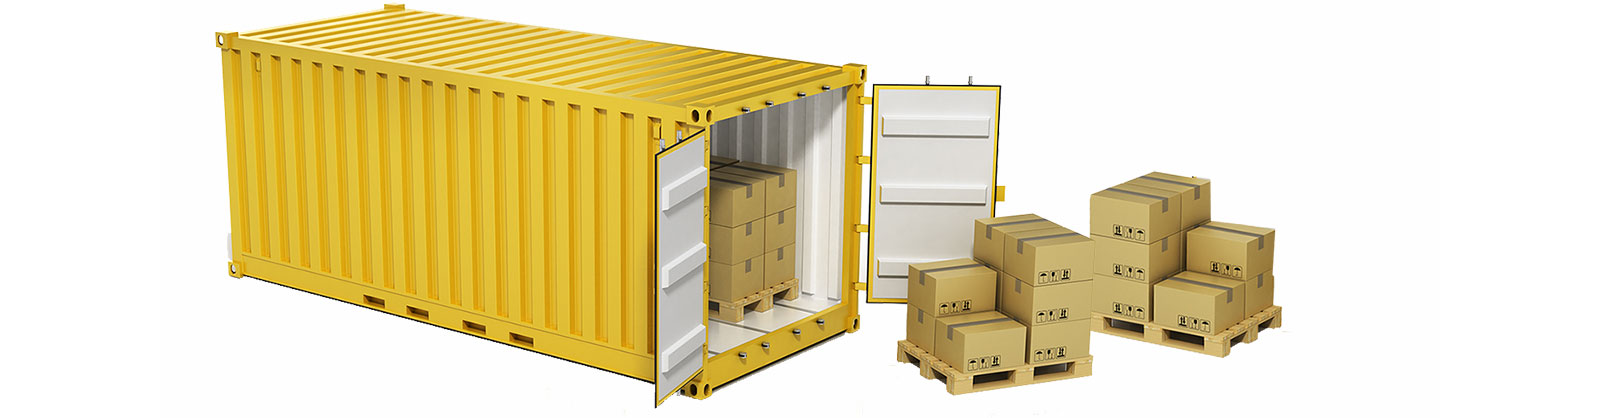 affordable 20' to 40' portable storage containers to businesses and individuals in the Northeast Texas and Northwest Louisiana area. LVT facilities are located in Sulphur Springs, Paris, Longview, and Jacksonville Texas and in Shreveport Louisiana. 800-426-3631 903-885-6059